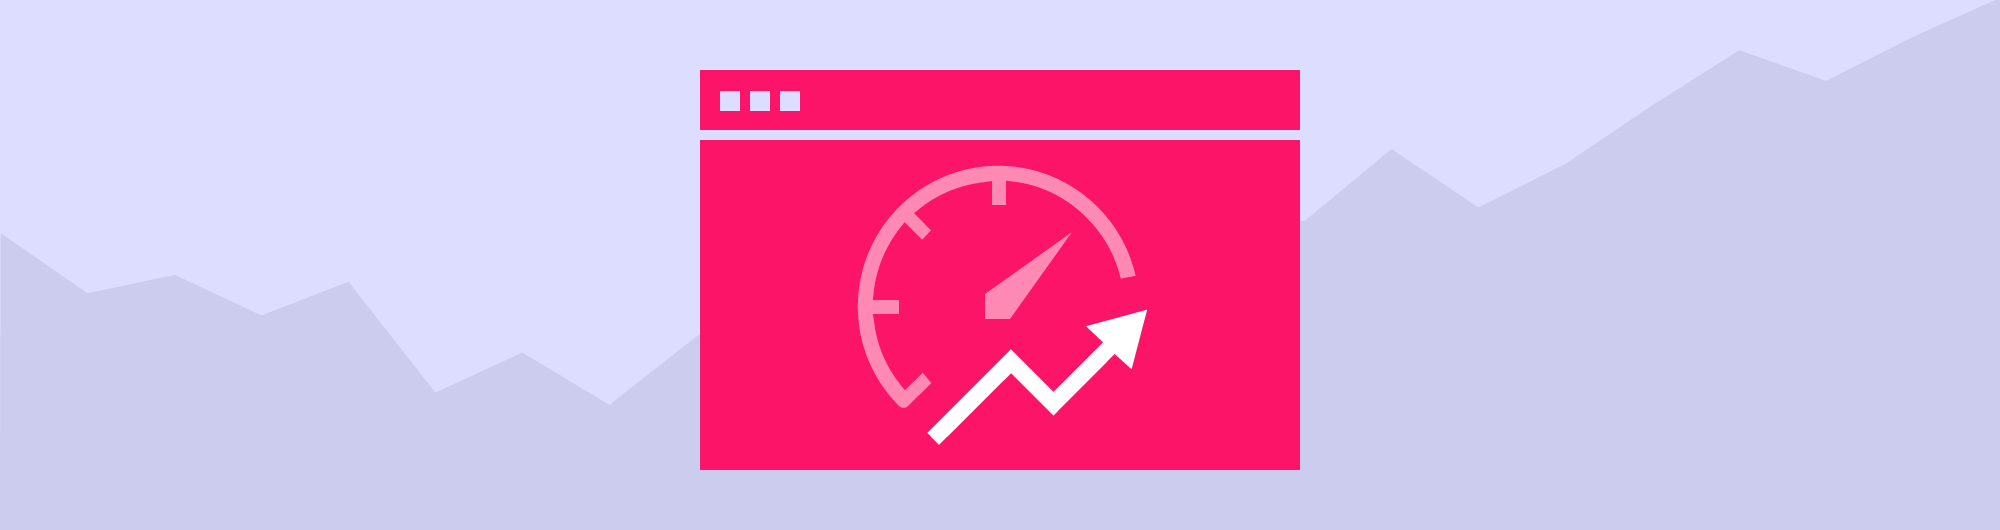 Increase conversion with a faster web app – Etch